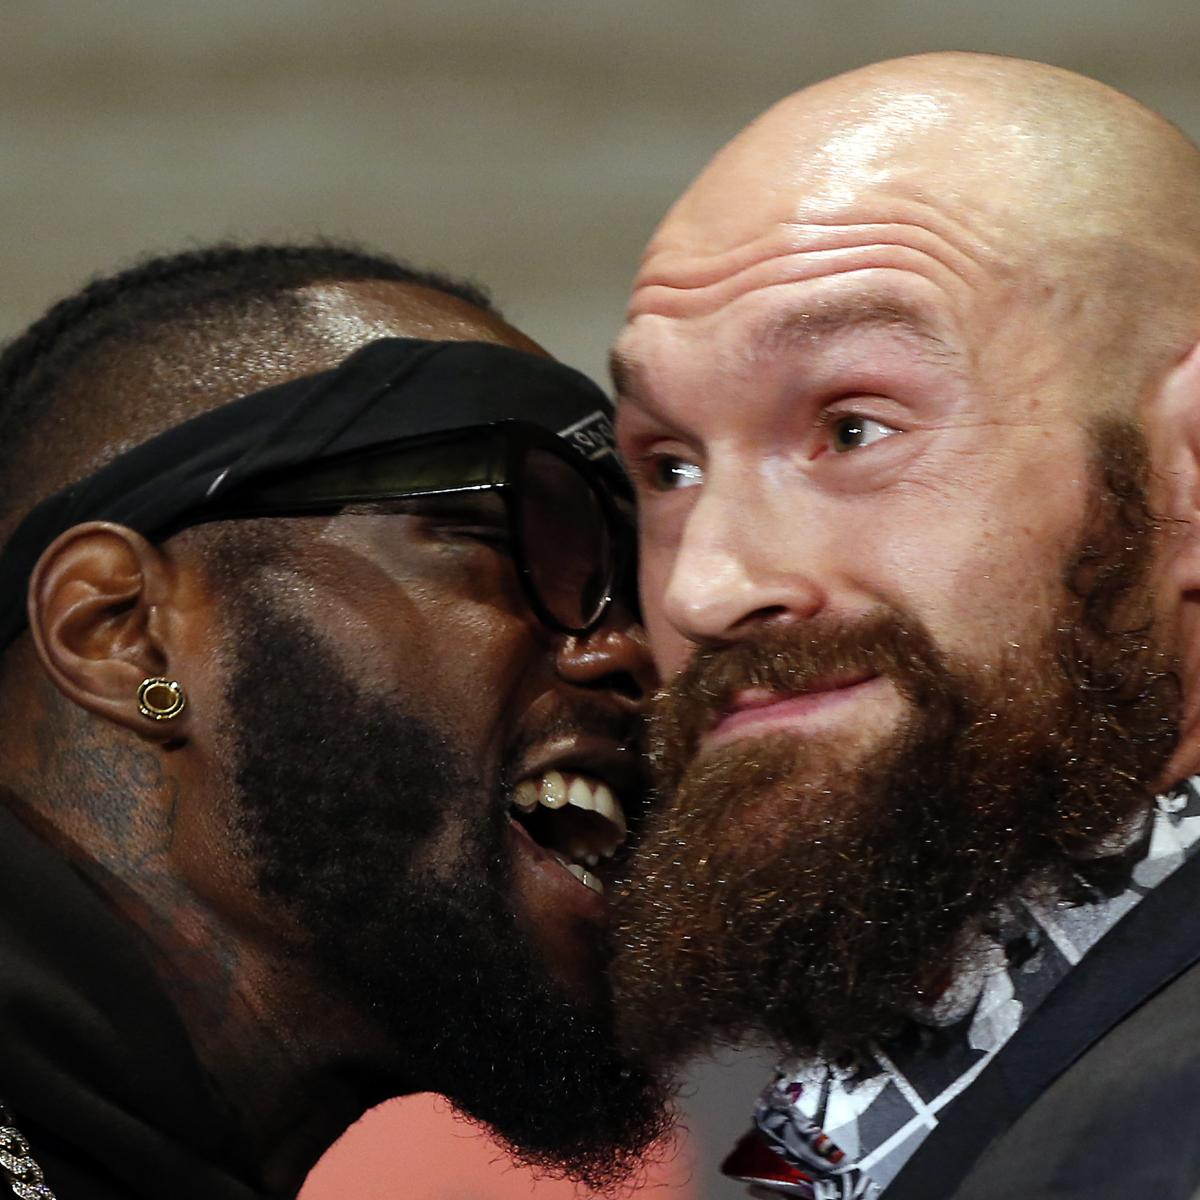 Deontay Wilder To Tyson Fury During Faceoff: 'I'm Gonna